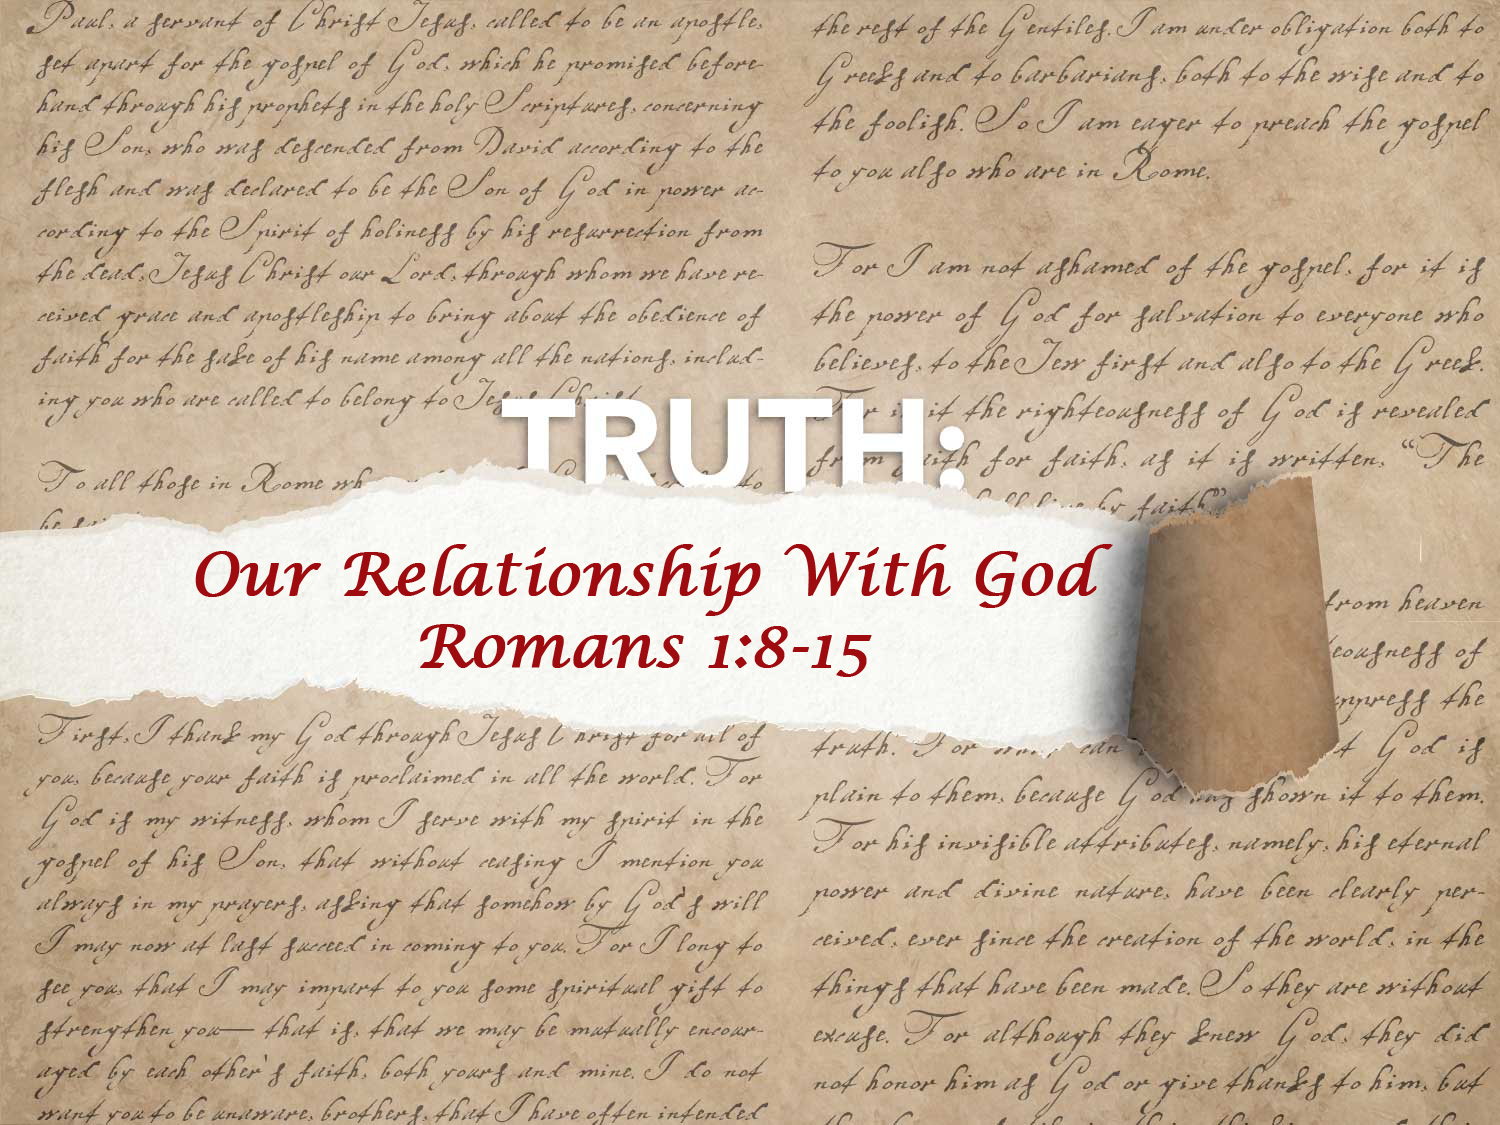 Romans 1:8-15 Our Relationship With God